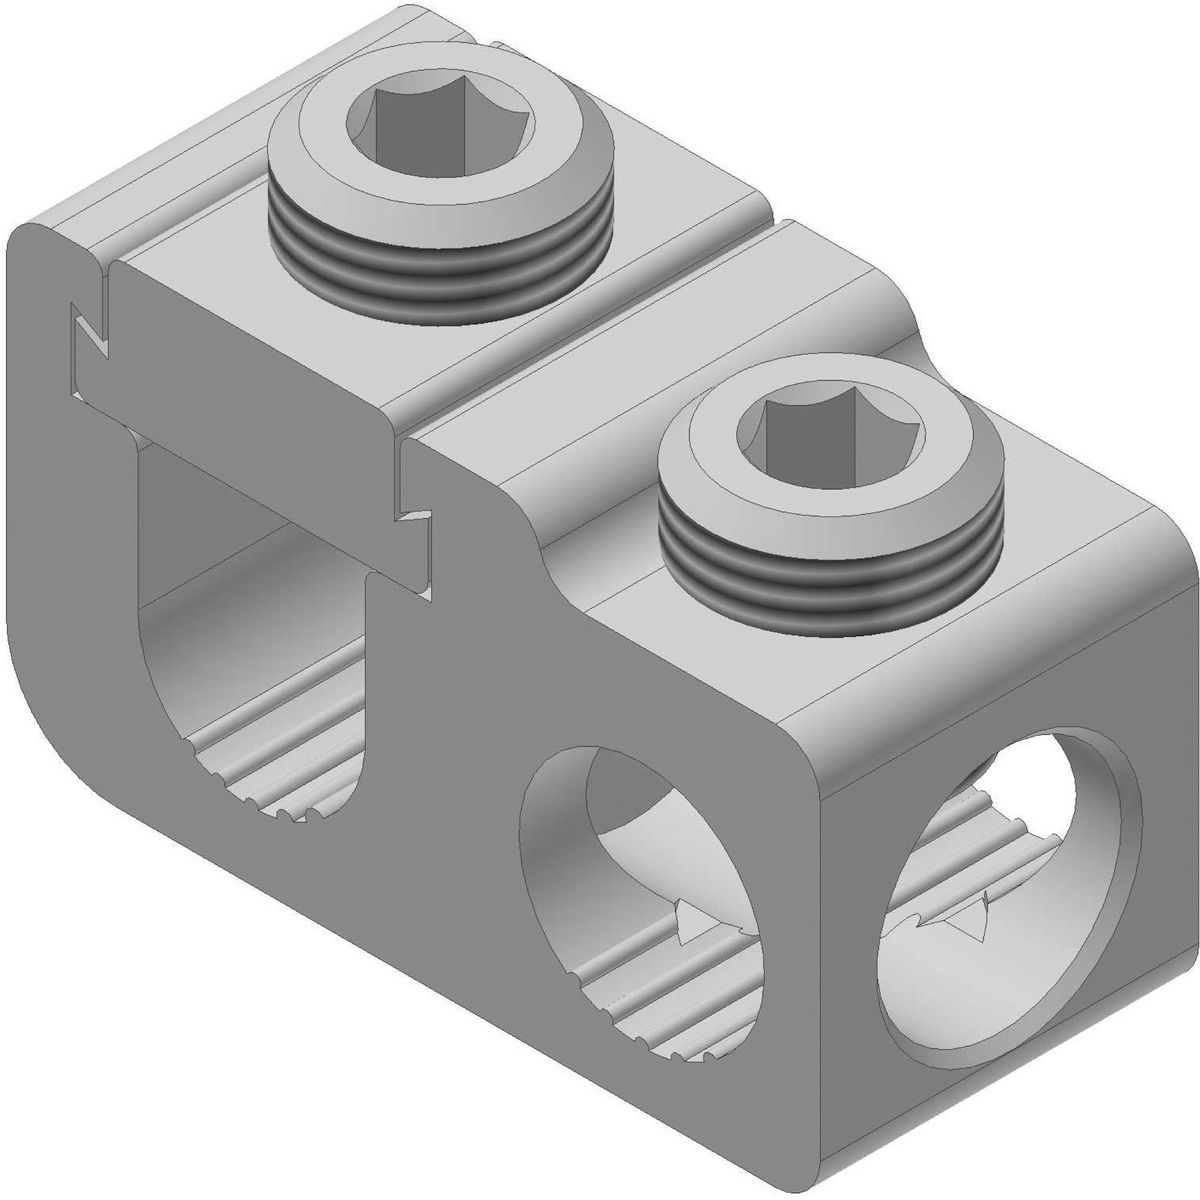 GPT-750-500 | Tap Connectors | Compression Connectors and Terminals ...